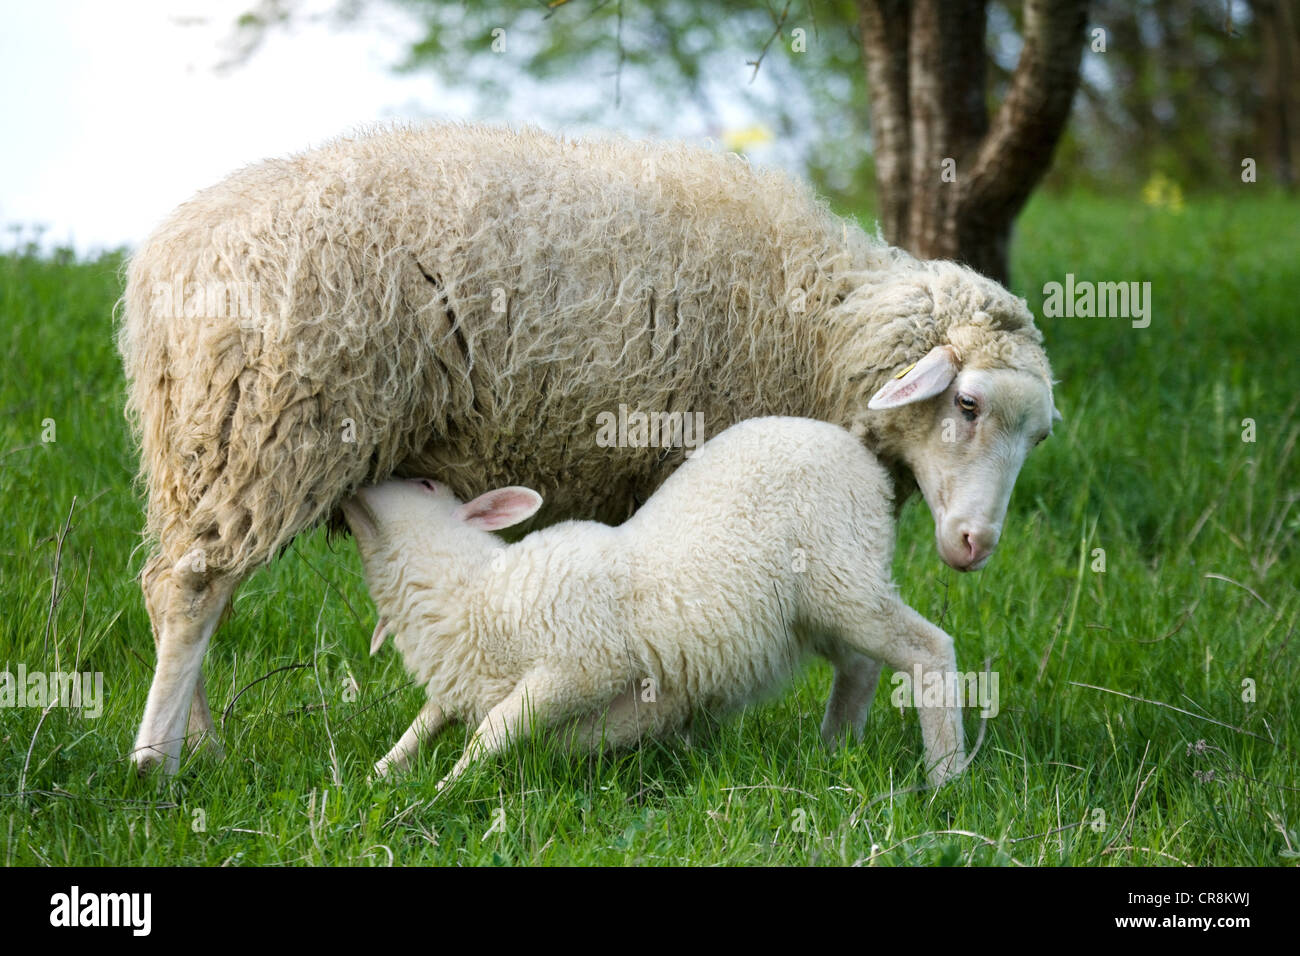 Lamb suckling from ewe - Stock Image